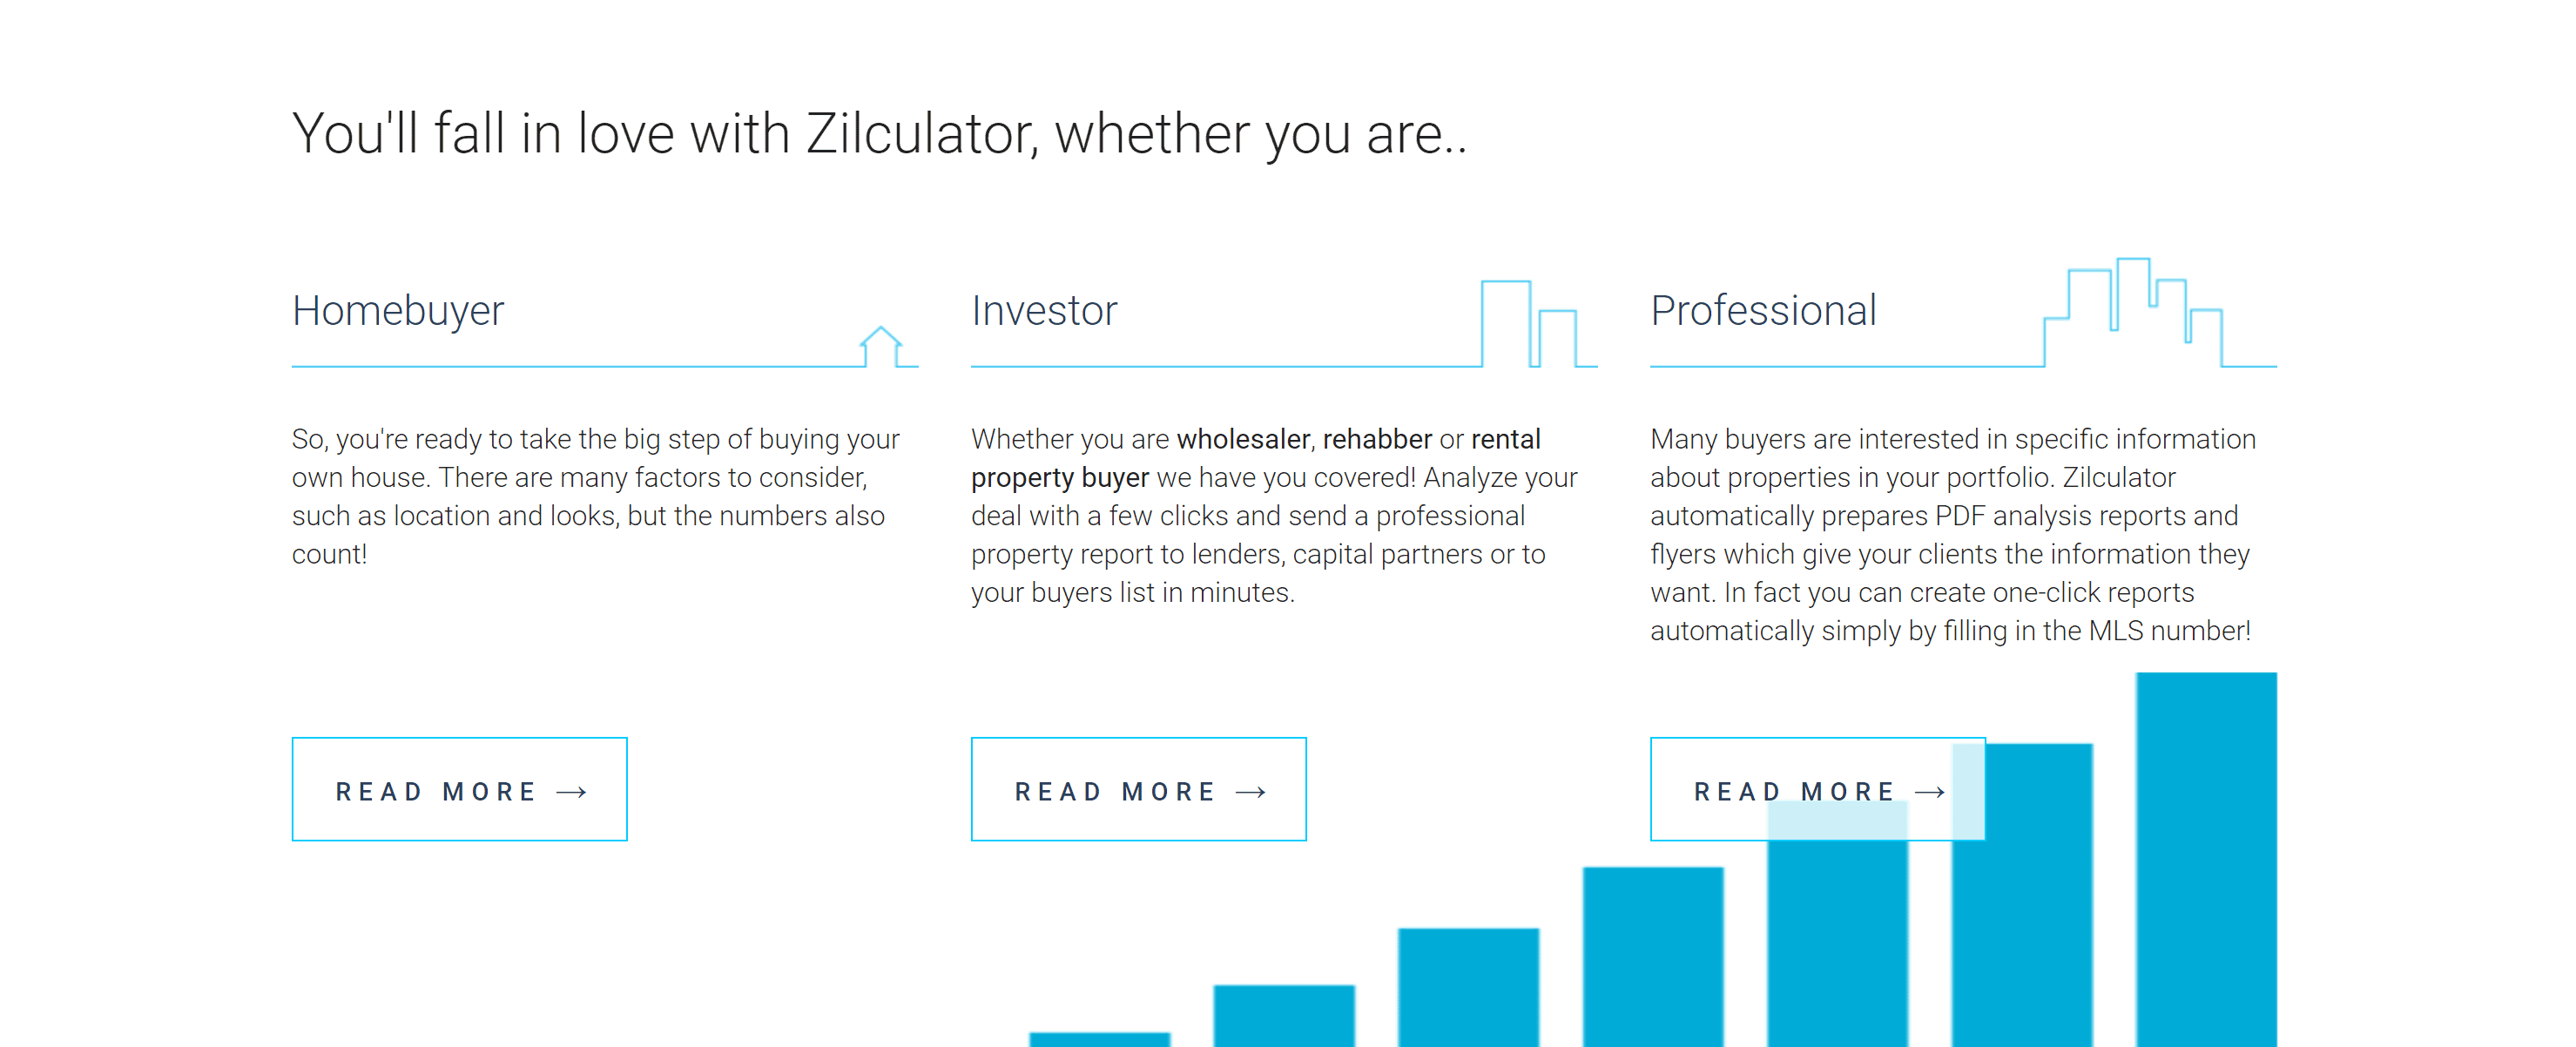 Zilculator users and tools- zilculator review